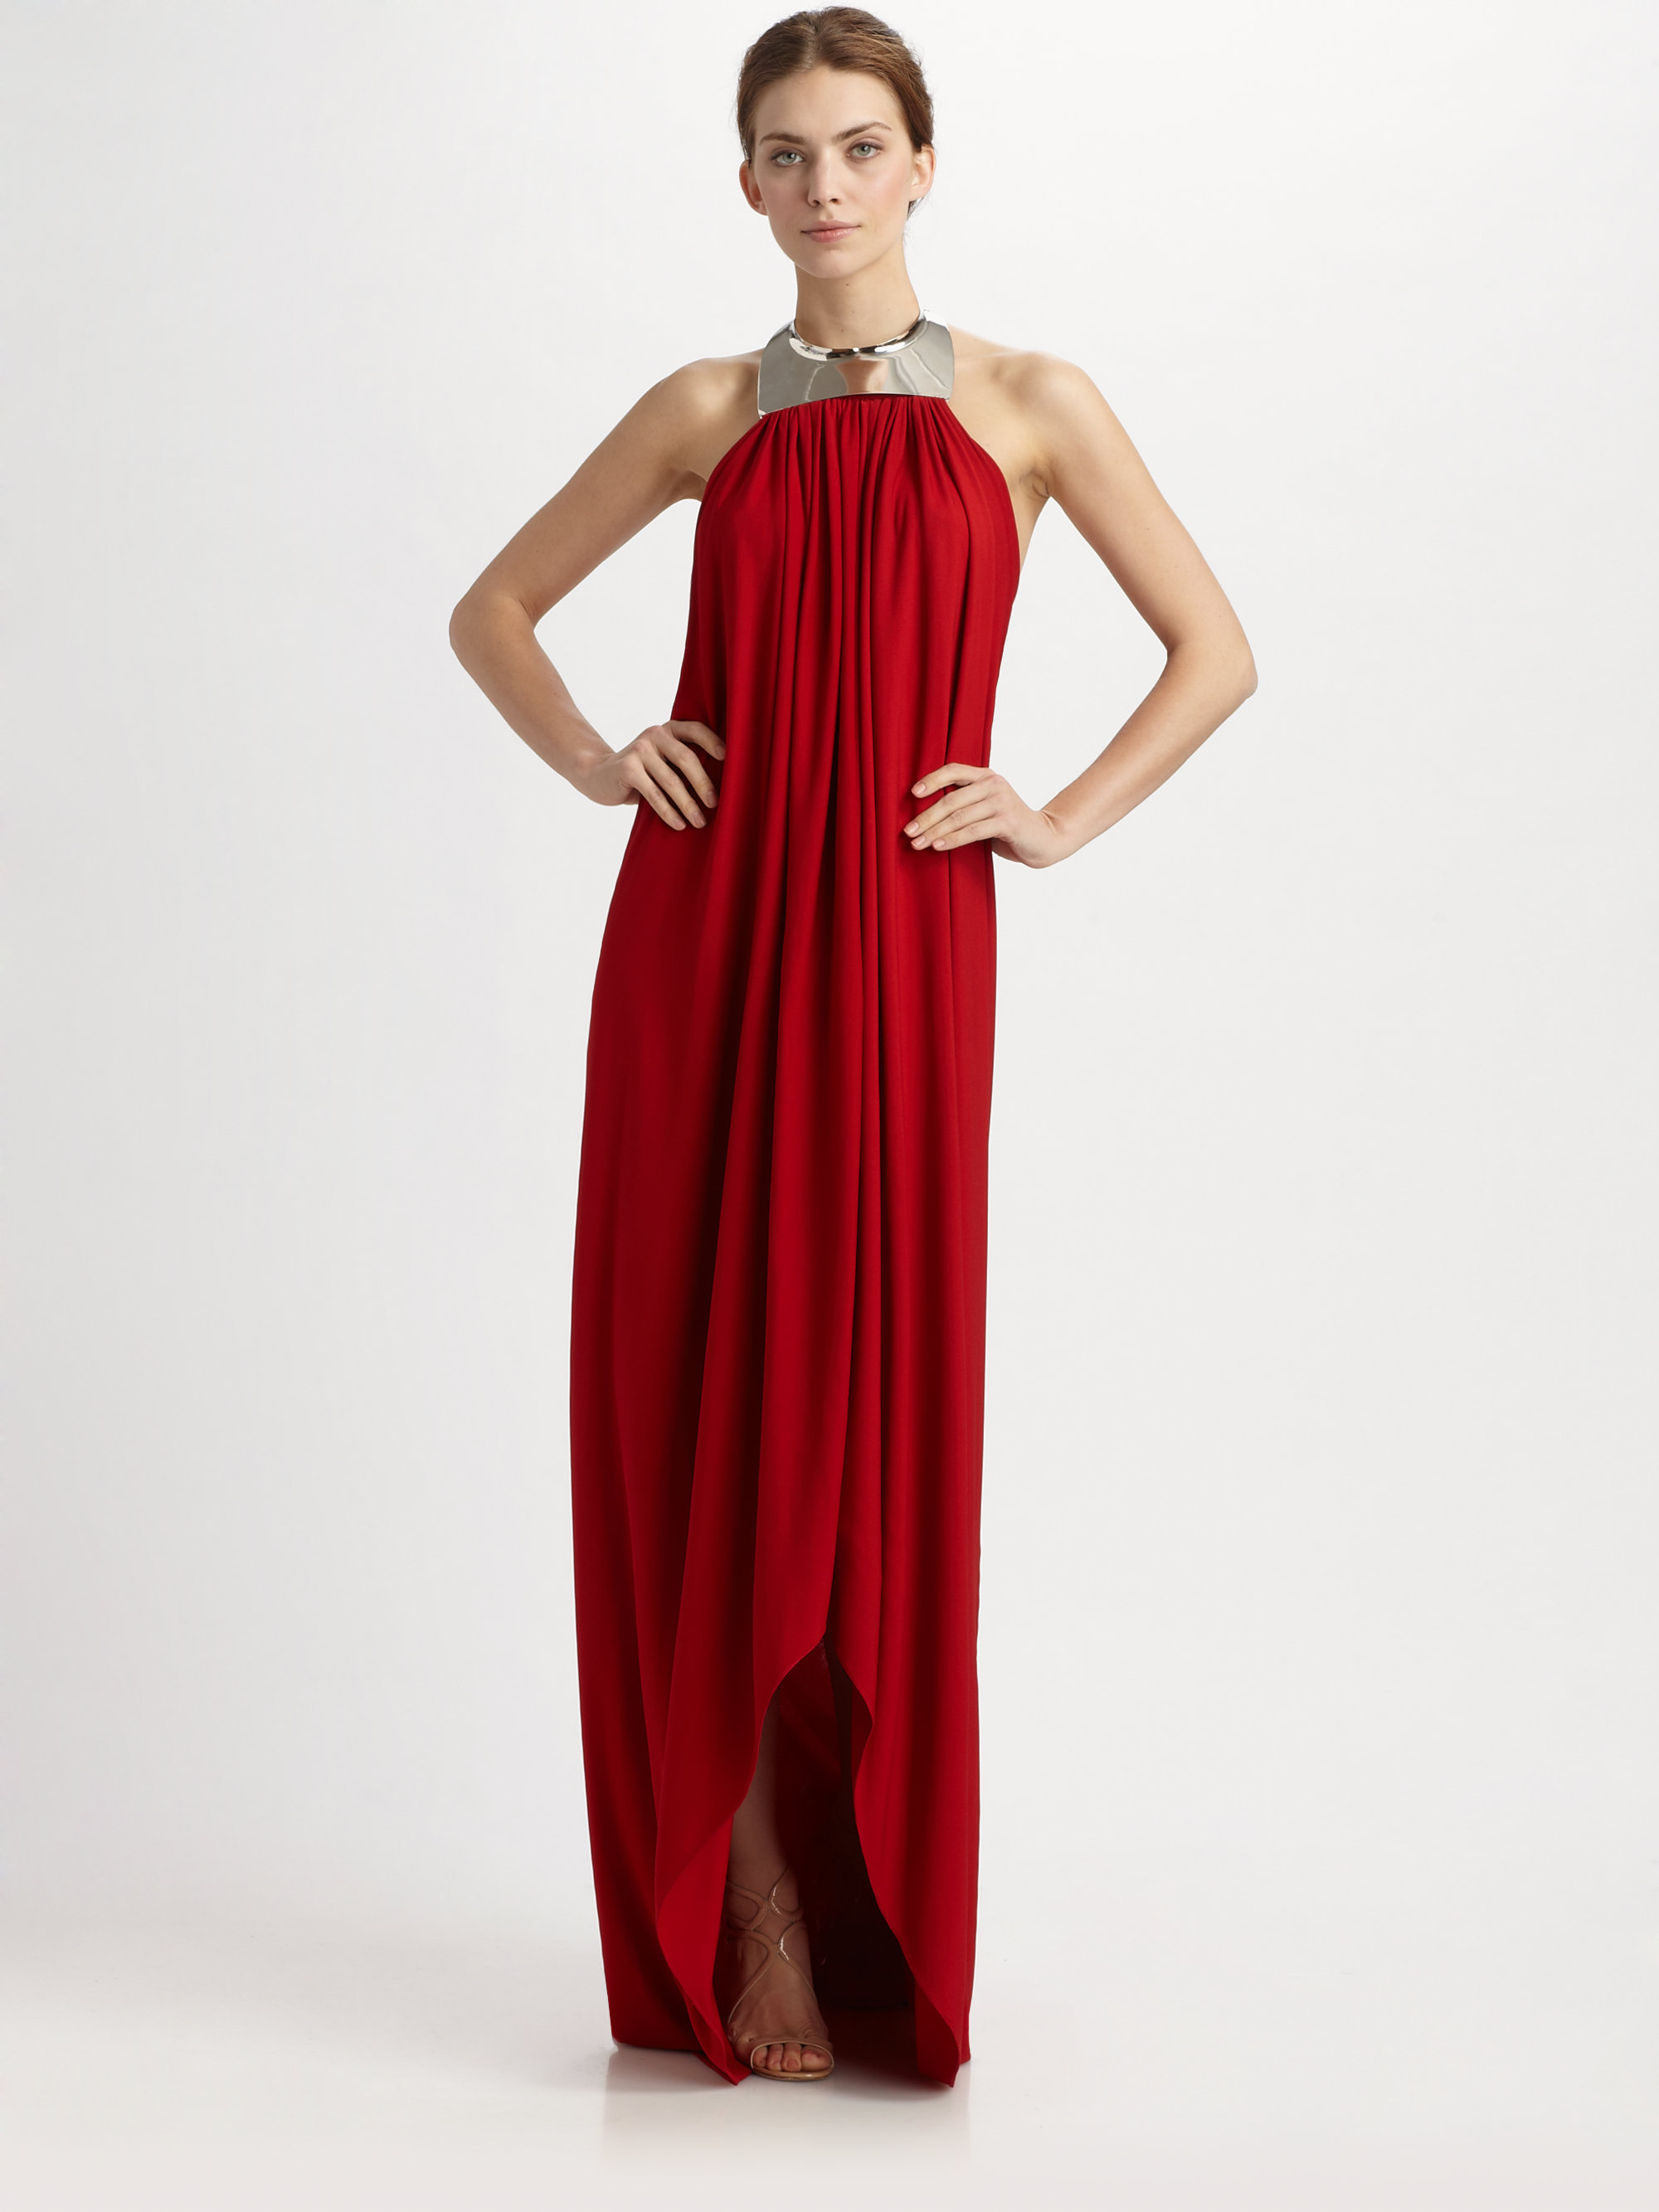 Lyst - Michael Kors Crepe Jersey Toga Gown in Red